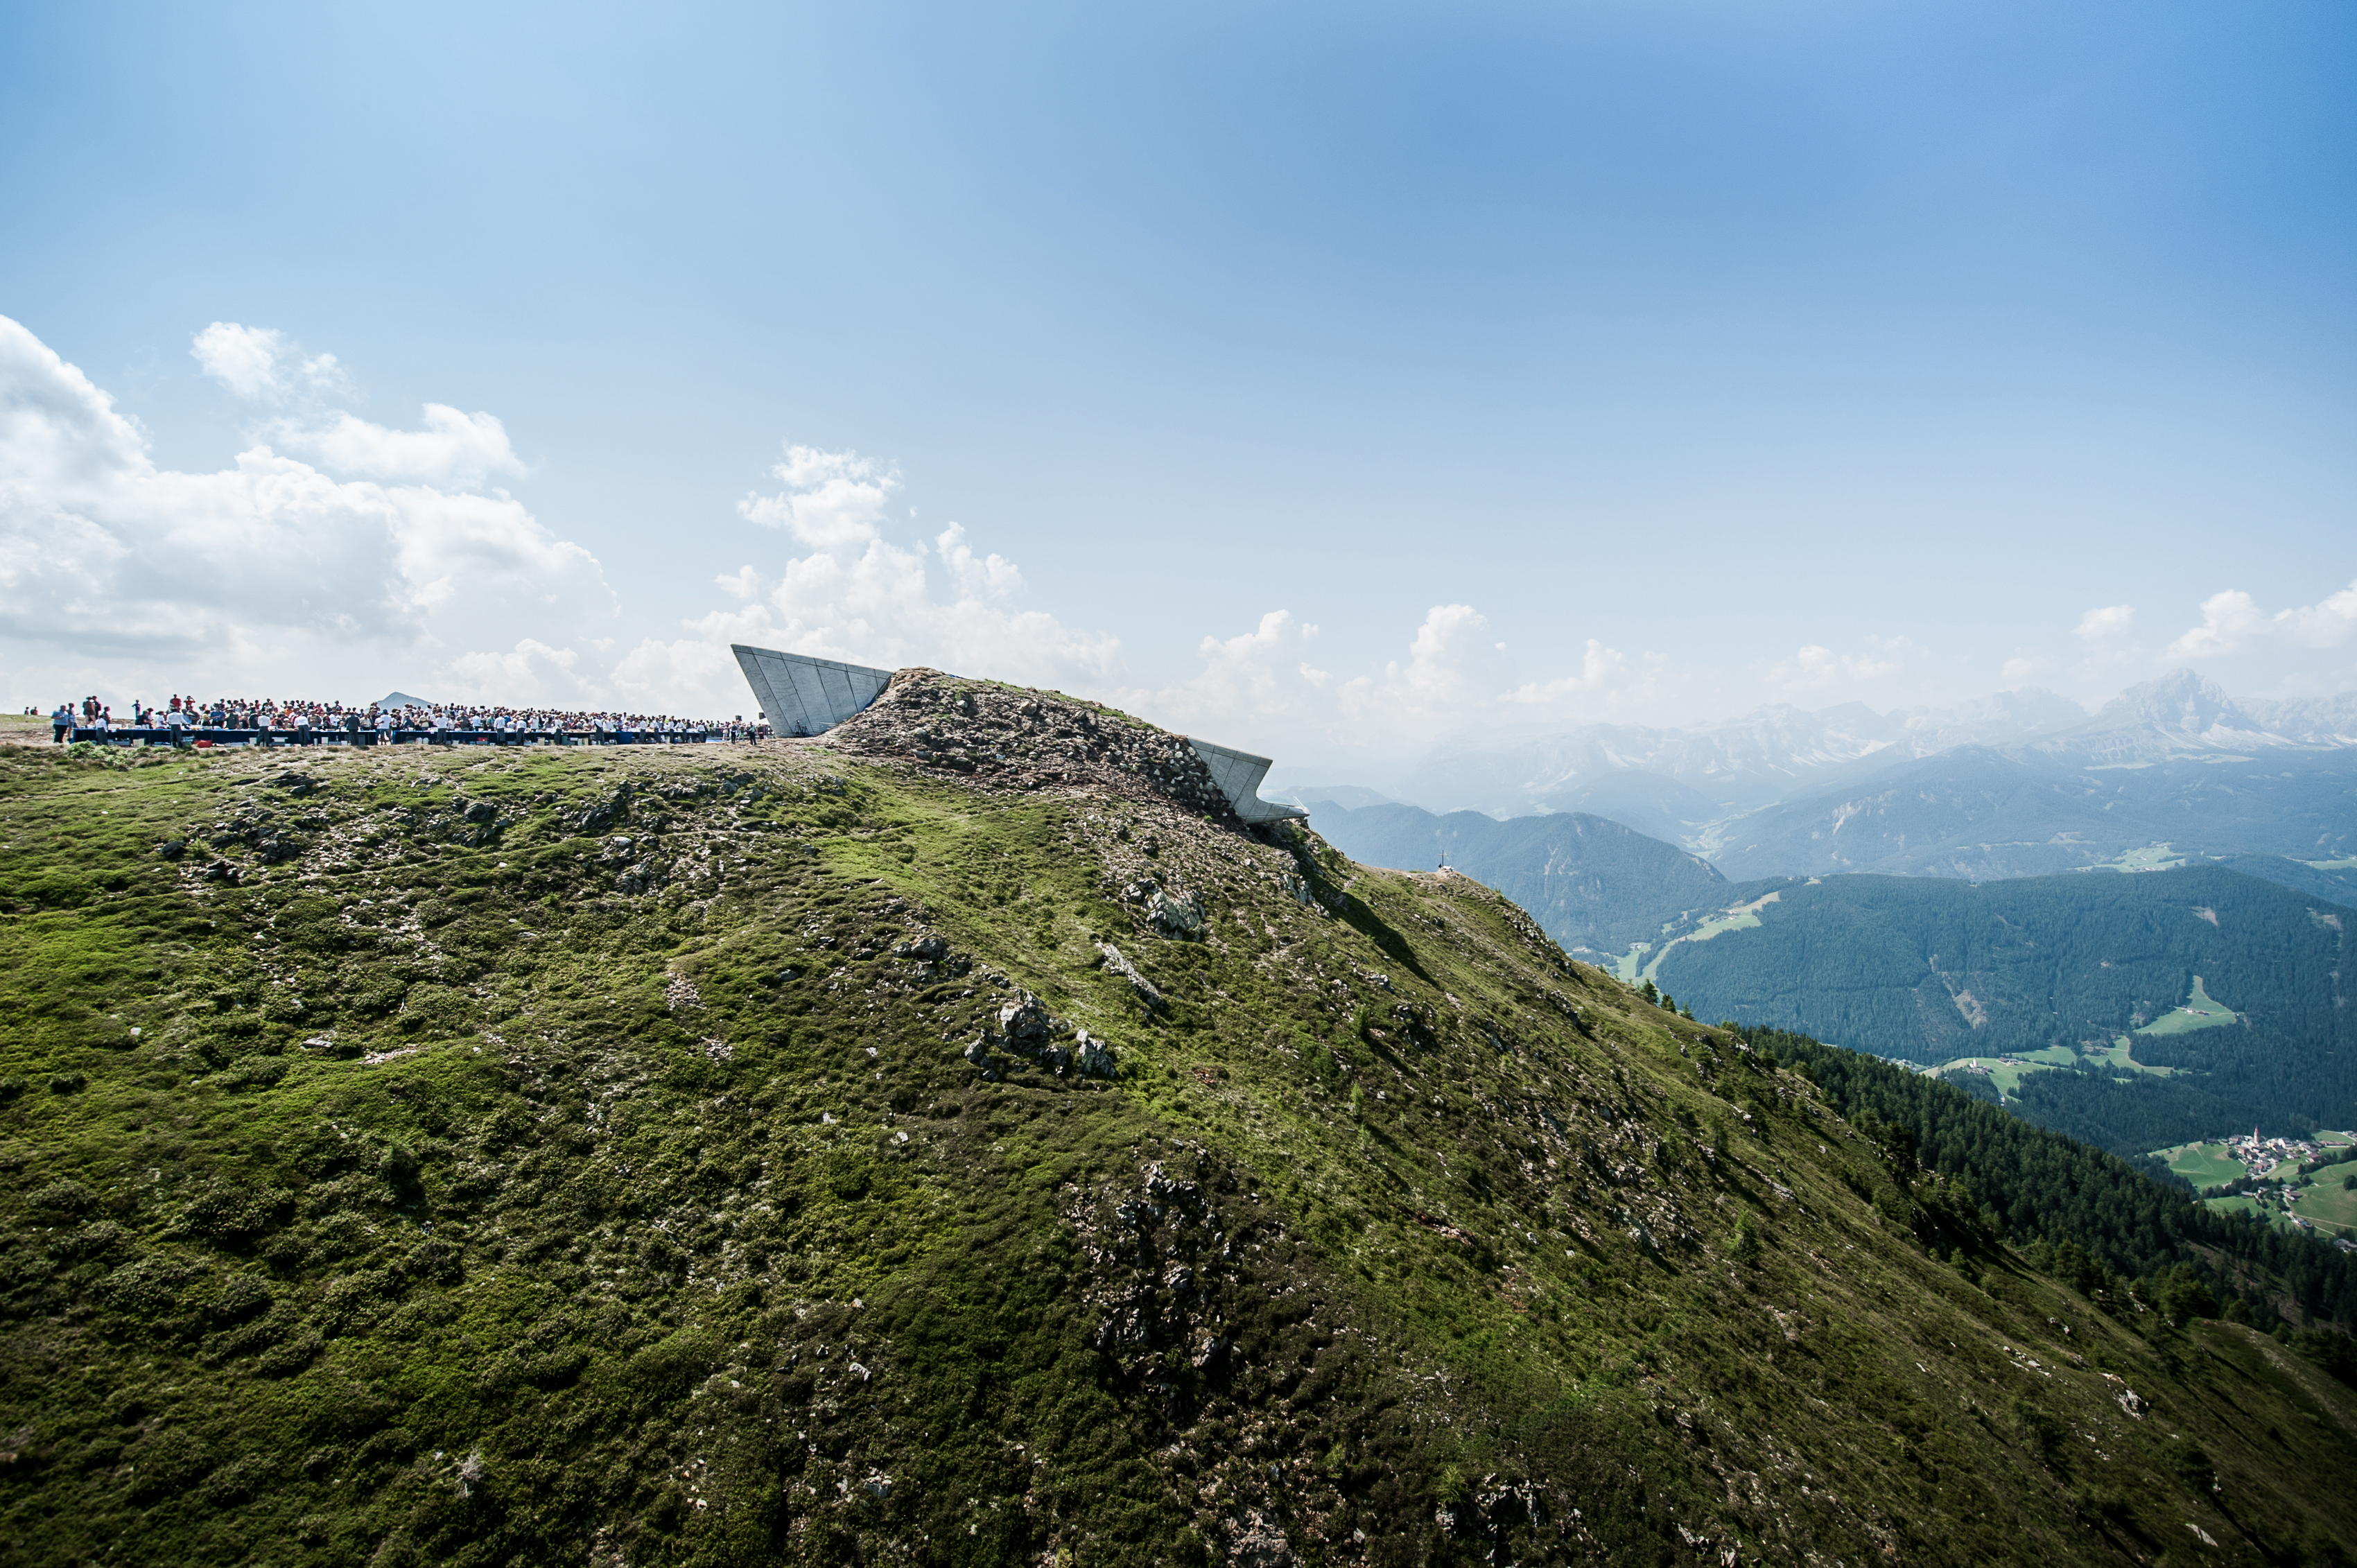 Designed by Zaha Hadid, the Corones Museum is the sixth in Messner's mountain museums